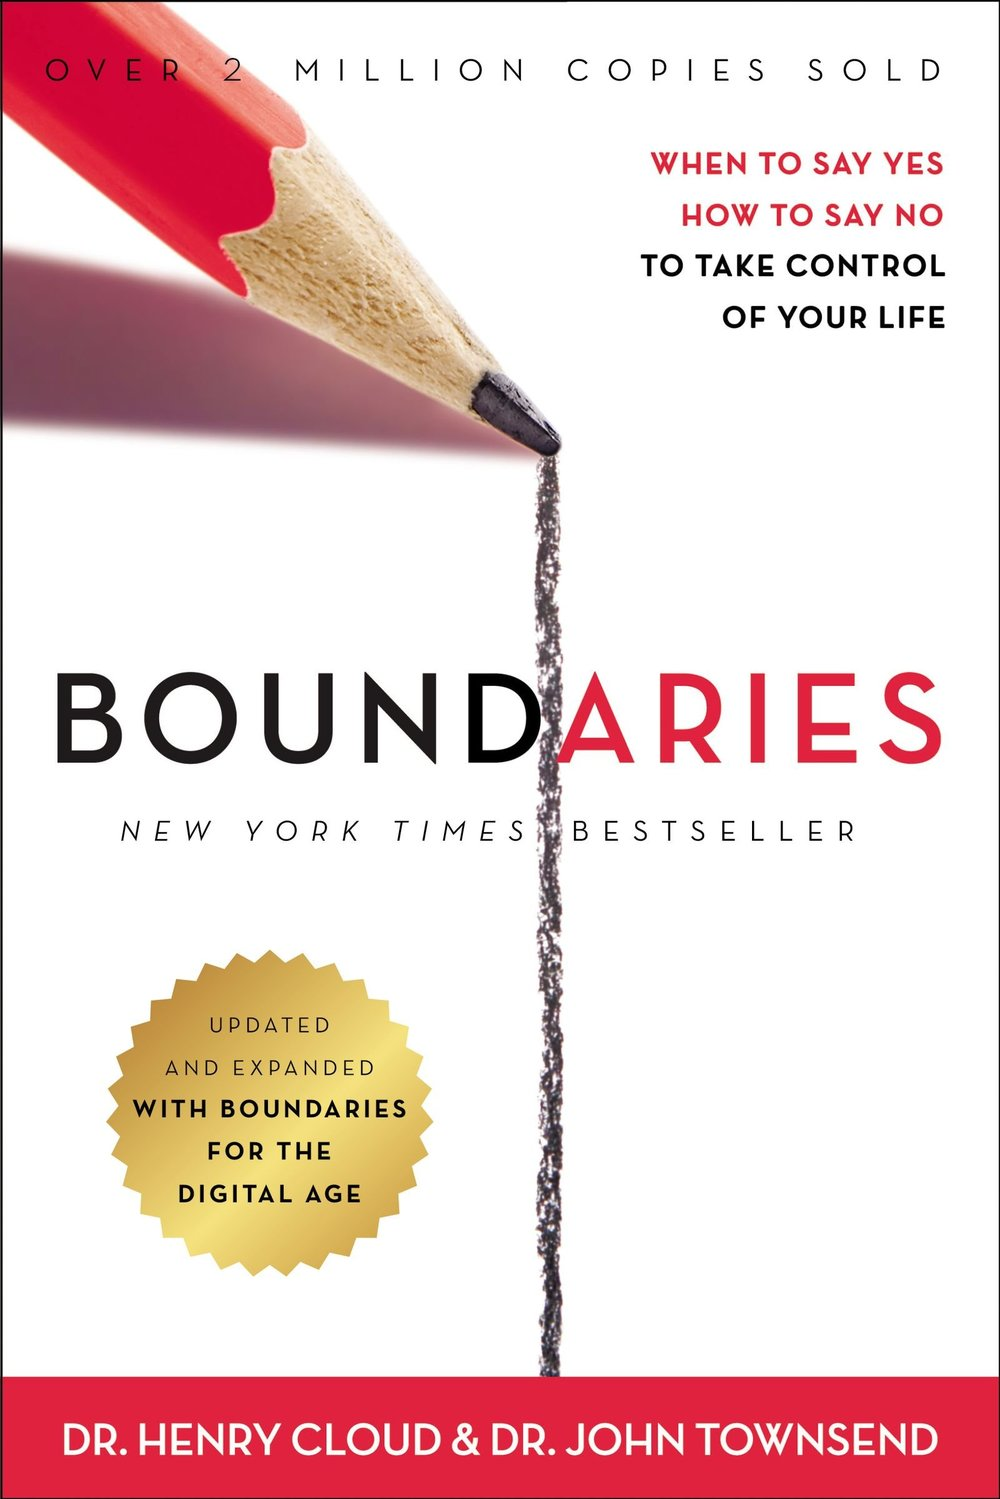 Boundaries - When to Say Yes, How to Say No To Take Control of Your Life